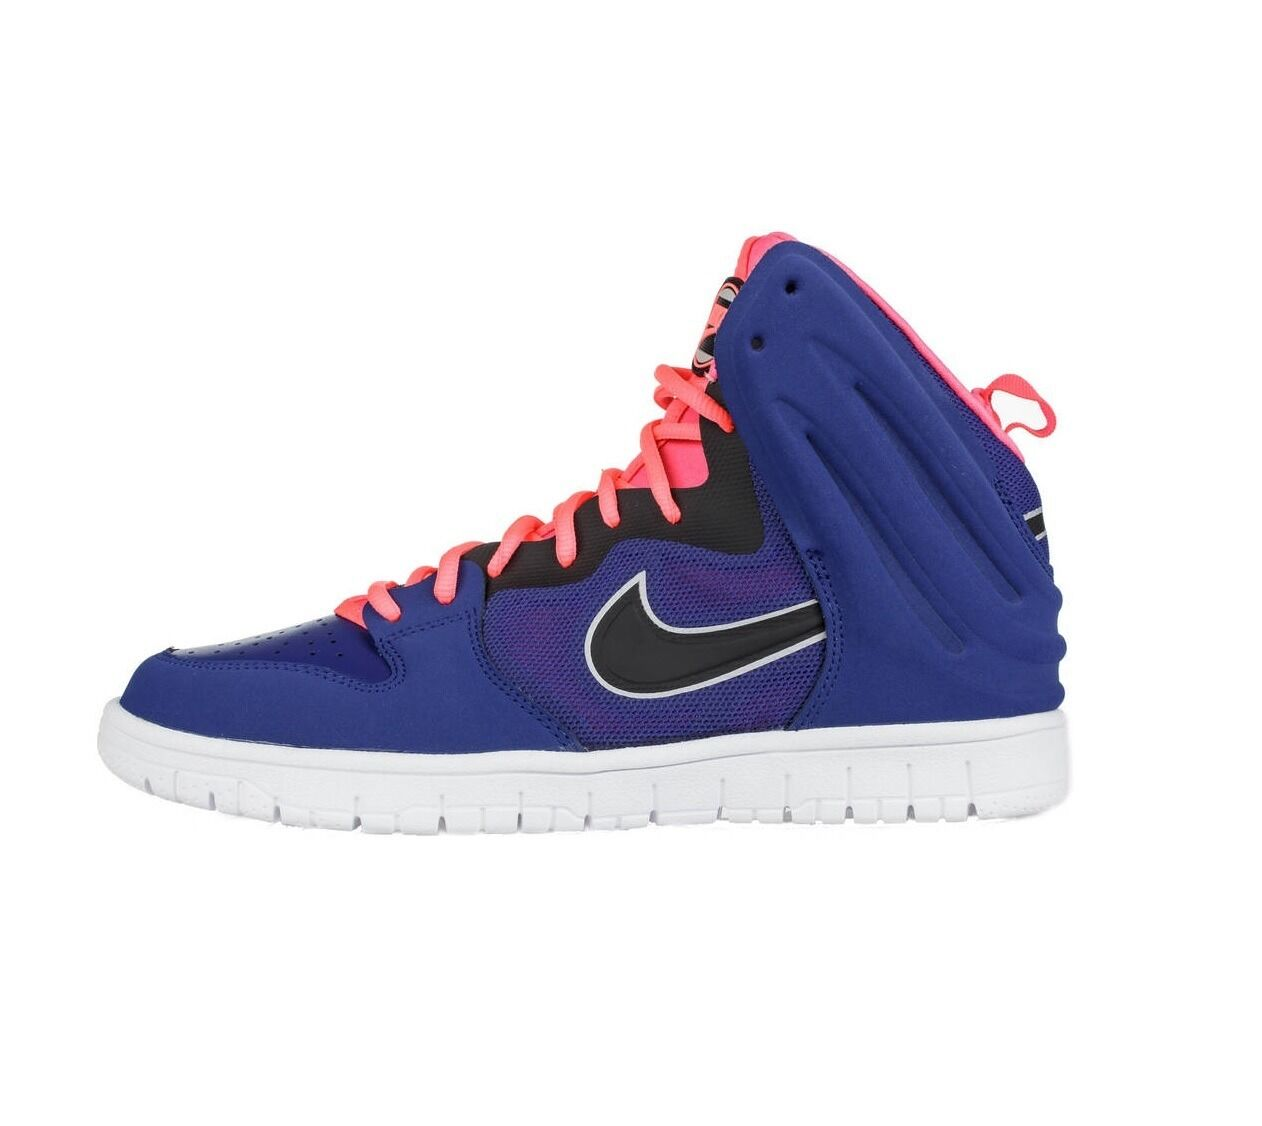 NIKE DUNK FREE HI TOP MENS TRAINER BOOT SIZE 8 EU 42.5 ROYAL BLUE - 599466-401